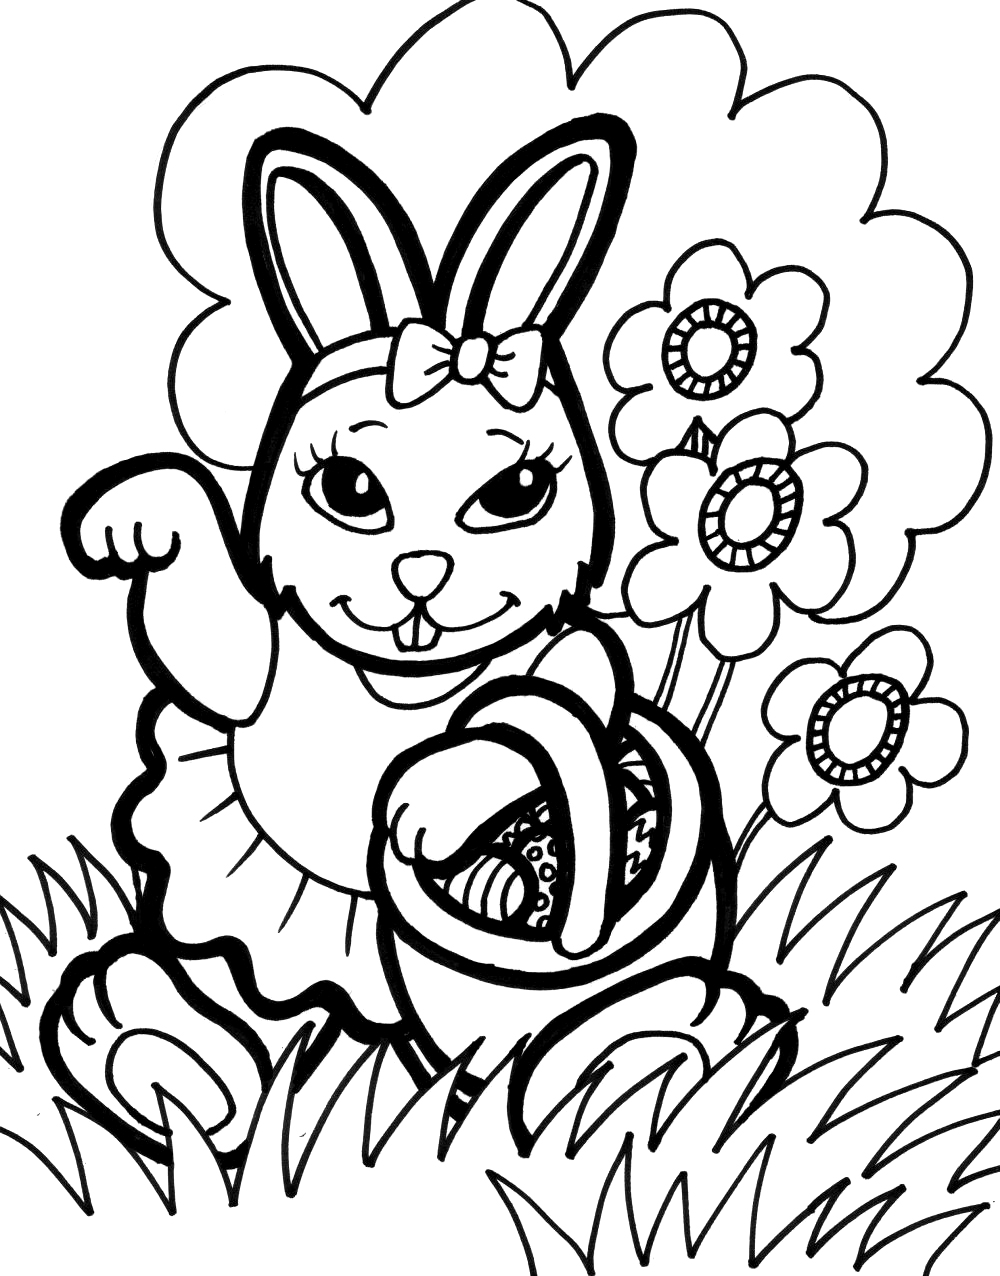 bunny printable coloring pages bunny coloring pages best coloring pages for kids bunny printable coloring pages